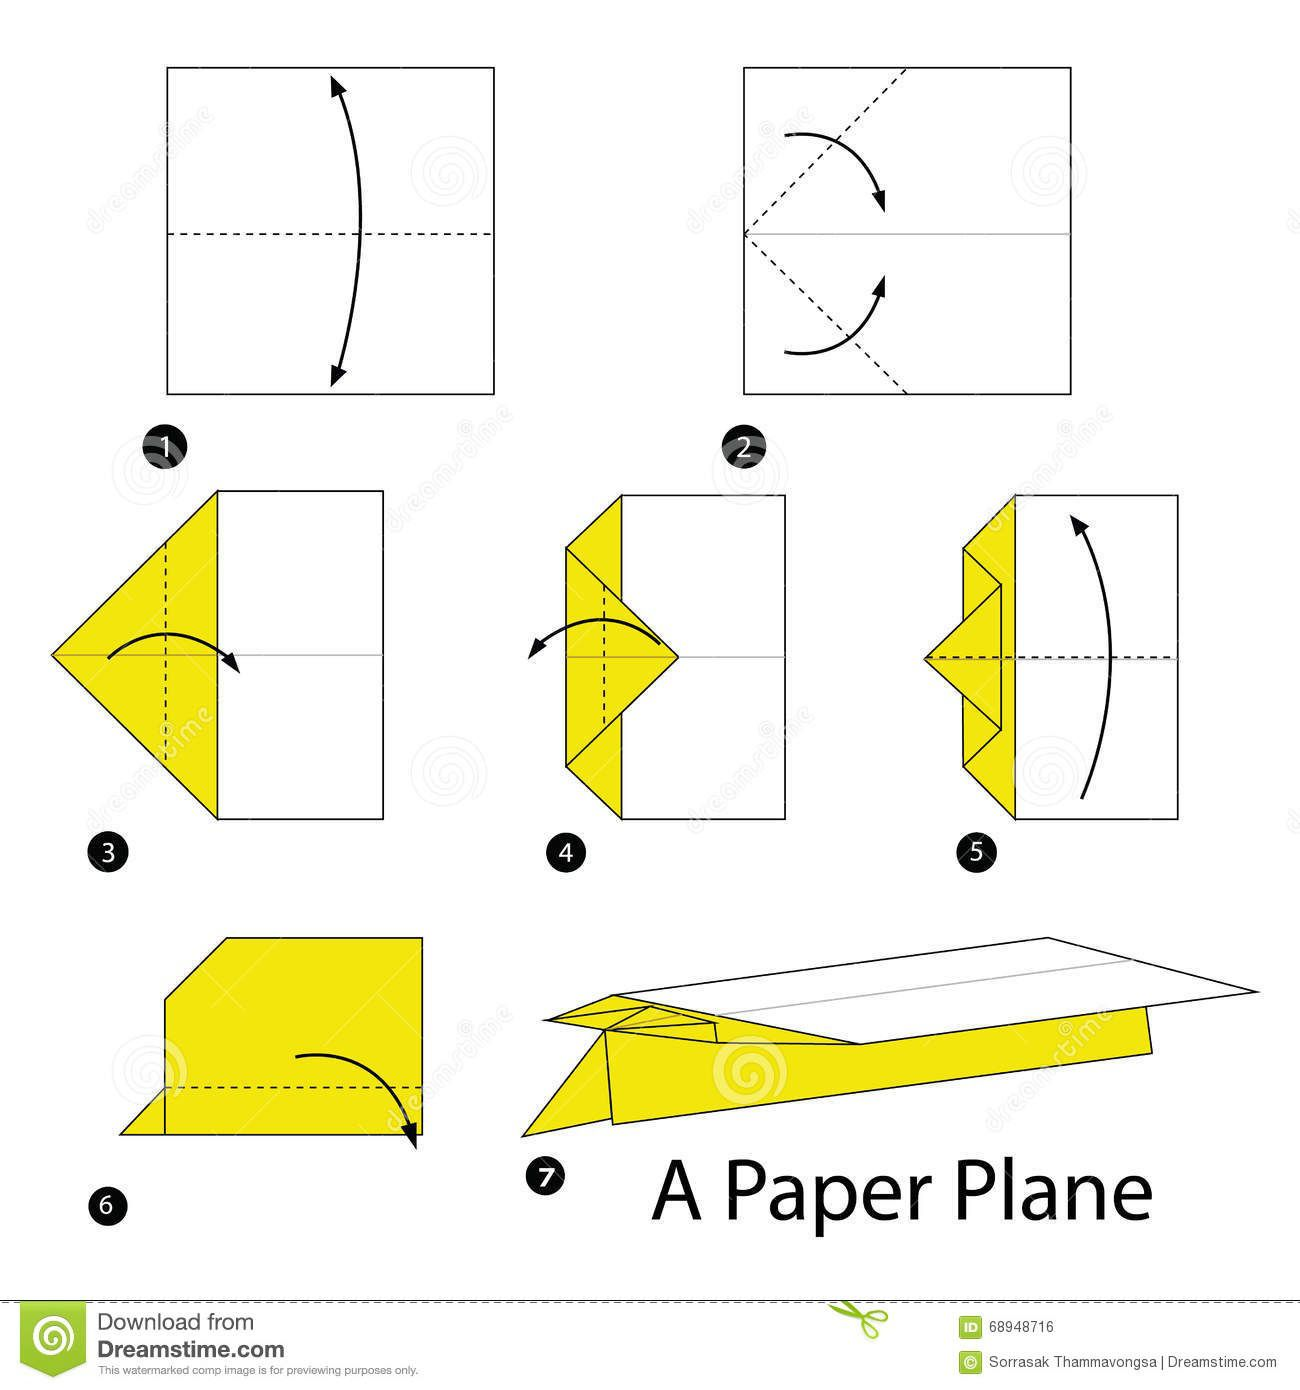 007 Top Printable Paper Plane Plan Picture  Plans Airplane Free Design InstructionFull